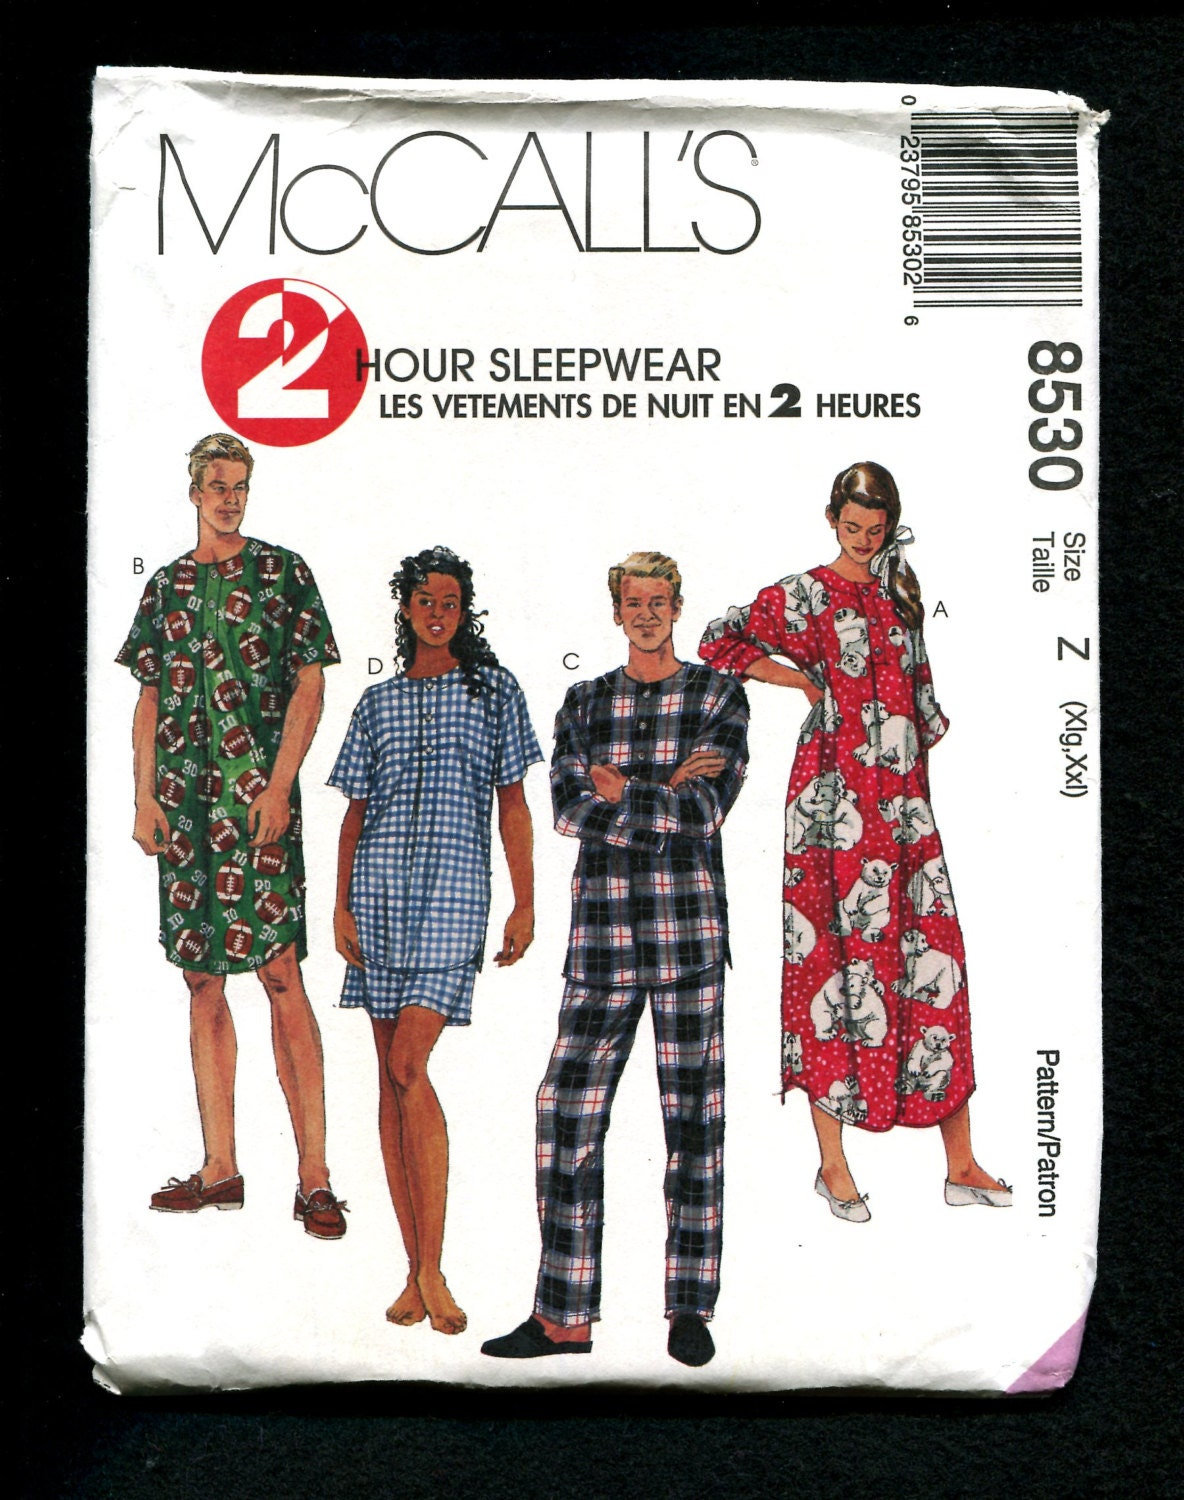 McCalls 8530 Nightgowns Nightshirts & Pajama Bottoms for Him